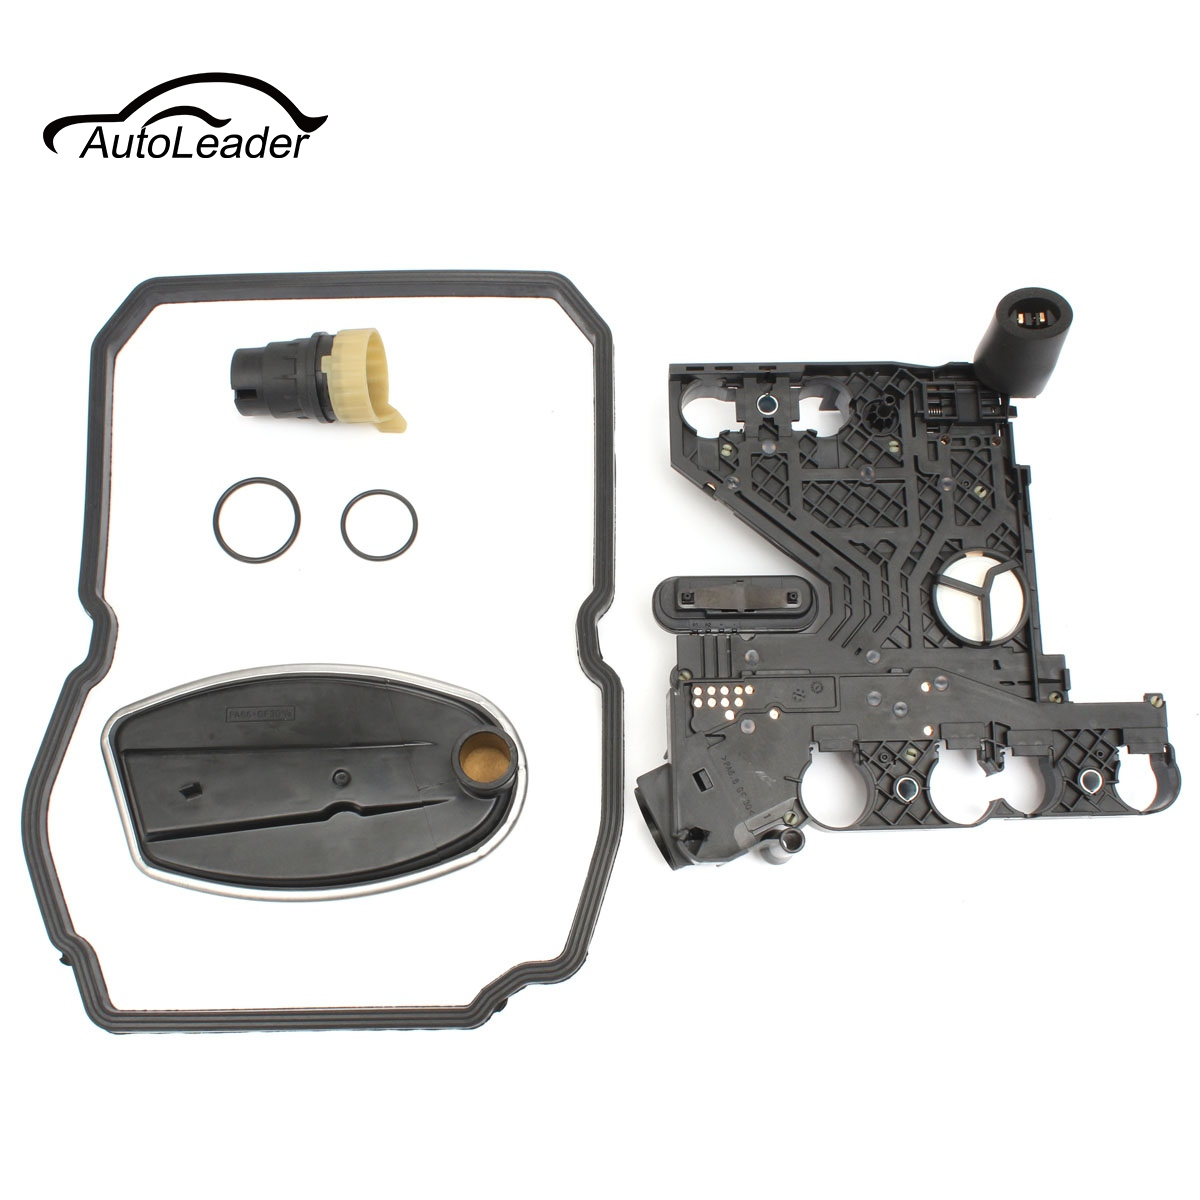 722.6 Gearbox Conductor Plate Connector Filter Kit For Mercedes for Benz 1402700161 loncin zongshen lifan tricycle motorcycle gearbox or shift gearbox for 150 200cc motorcycle powerful gearbox chuanyu brand